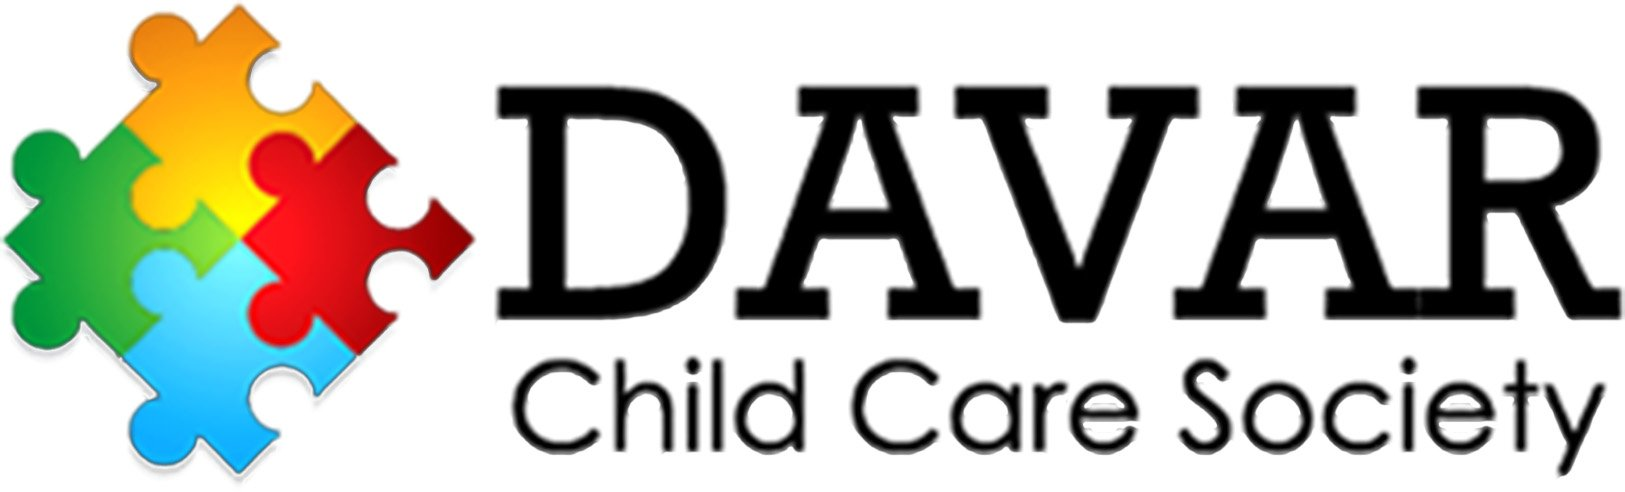 Davarchild Care Mock Up